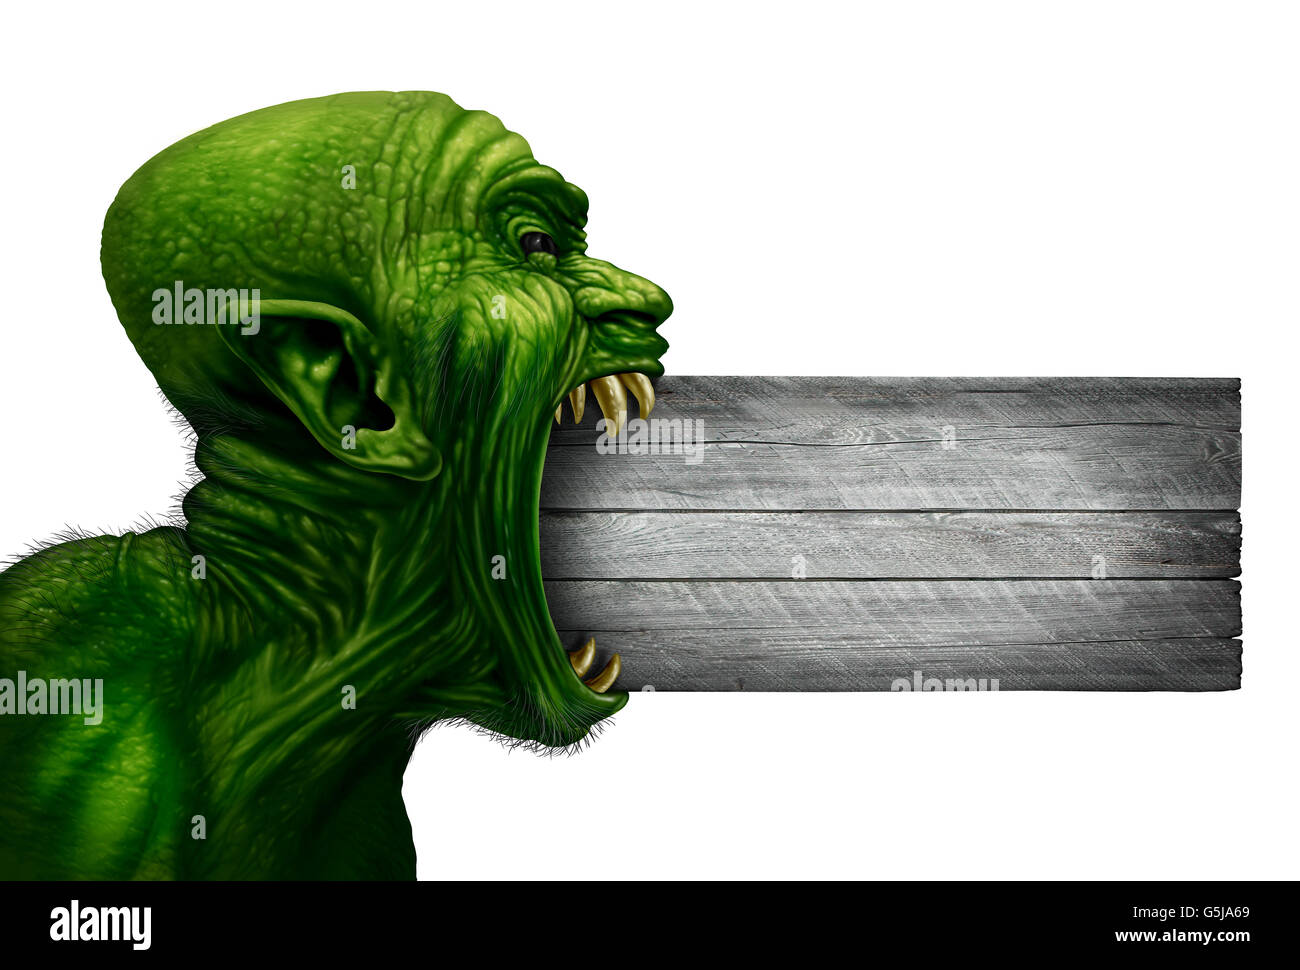 Zombie head blank sign and monster face side view as a demon or mutant beast biting into a wood signage as a creepy - Stock Image